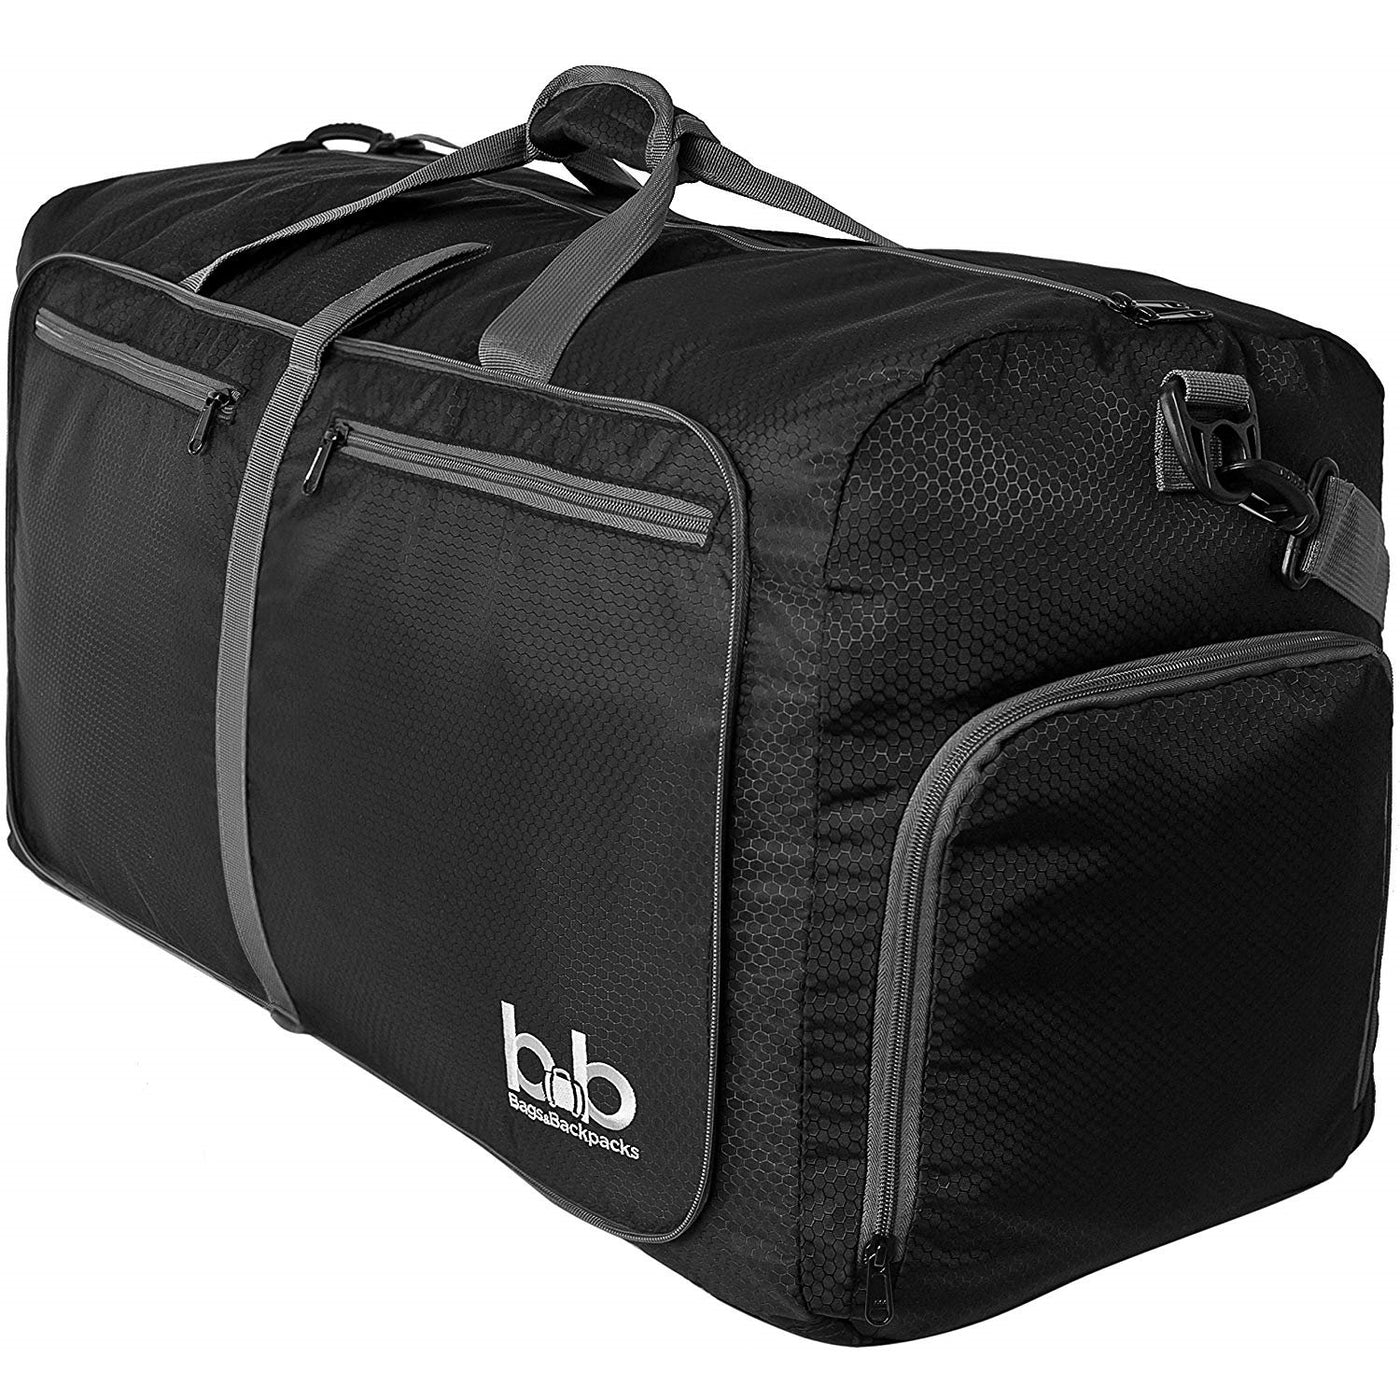 B B Extra Large Duffle Bag with Pockets - BB Bags Backpacks ... 59a26730eb2e2